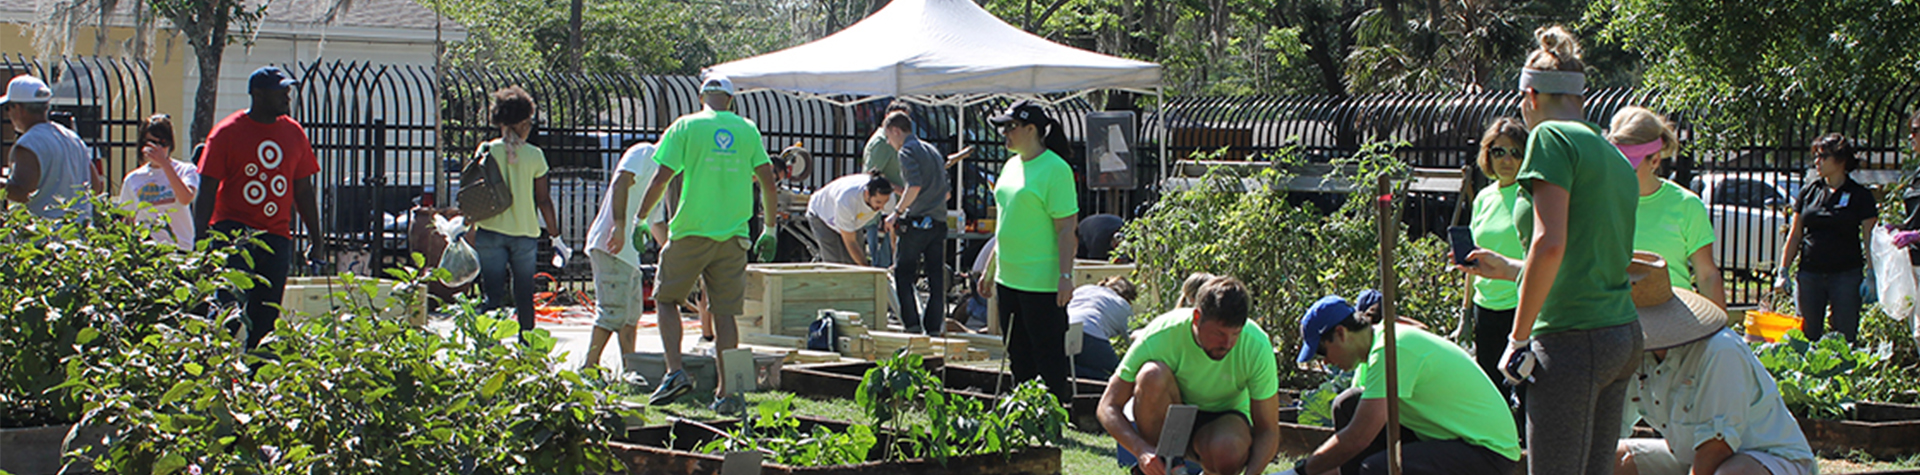 Volunteers working in the community garden at Harvest Hope Park in Tampa, Florida